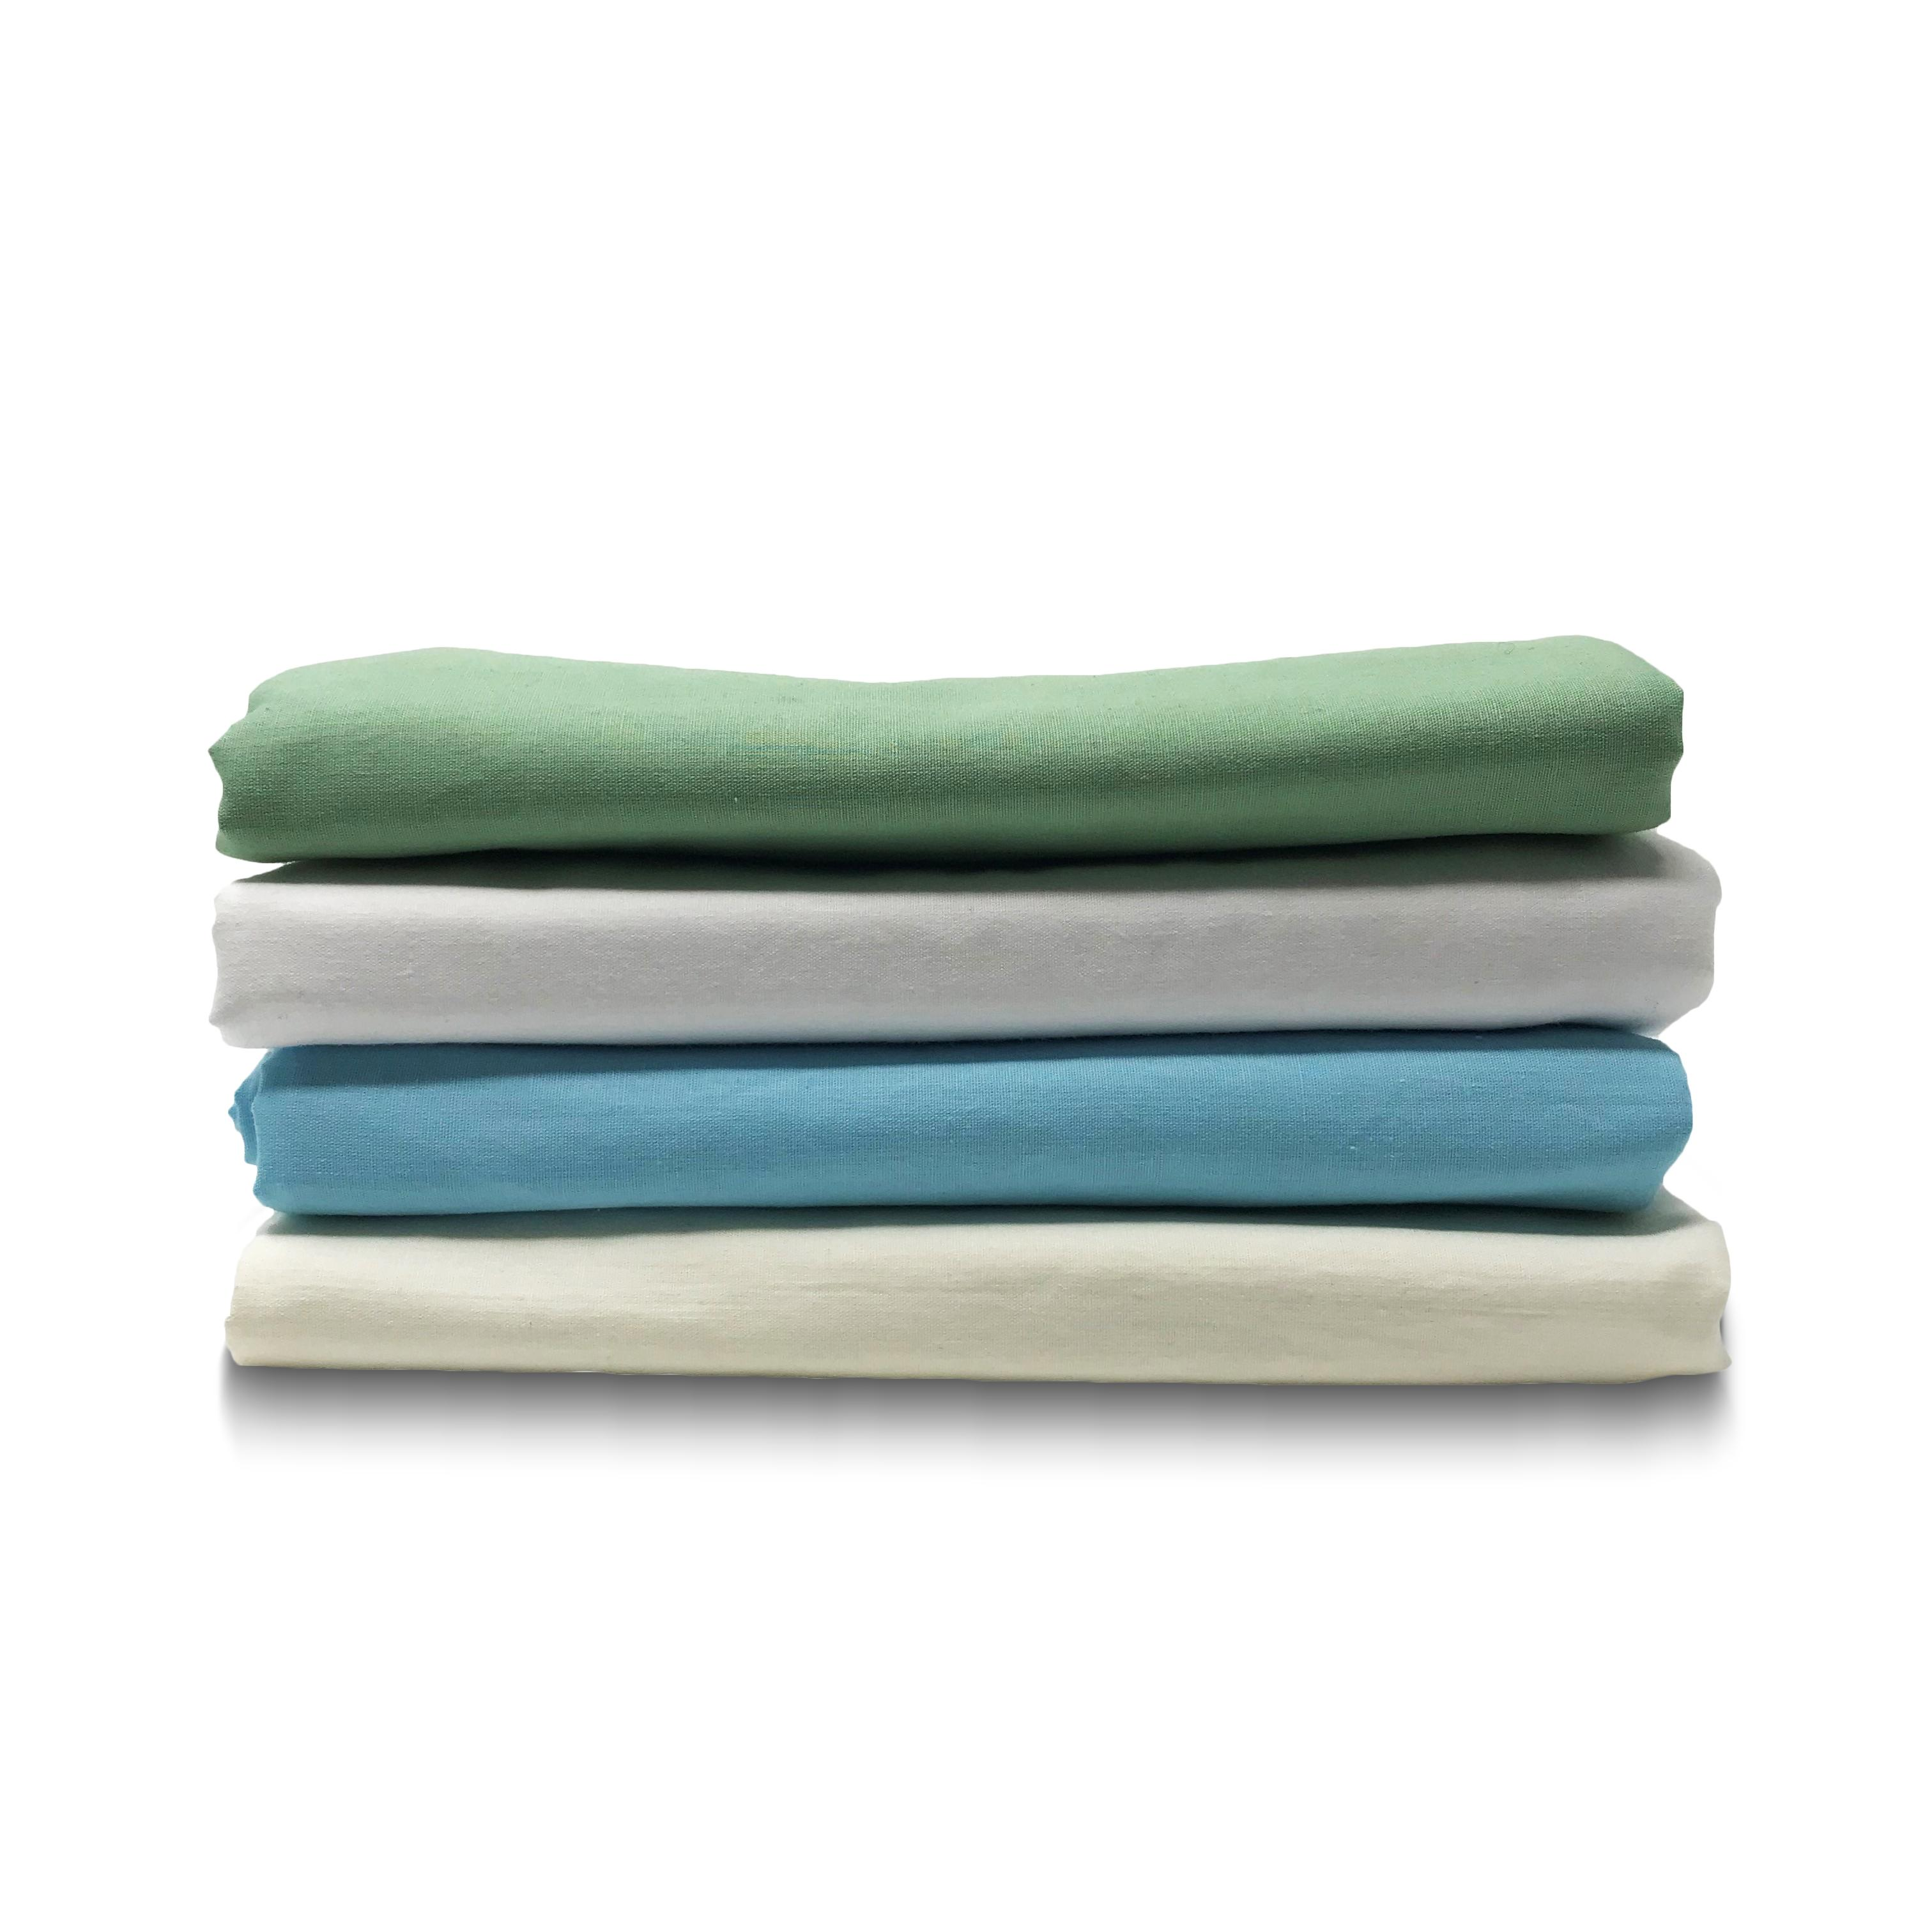 Comfy Sheets 3-Piece Massage Sheet Set